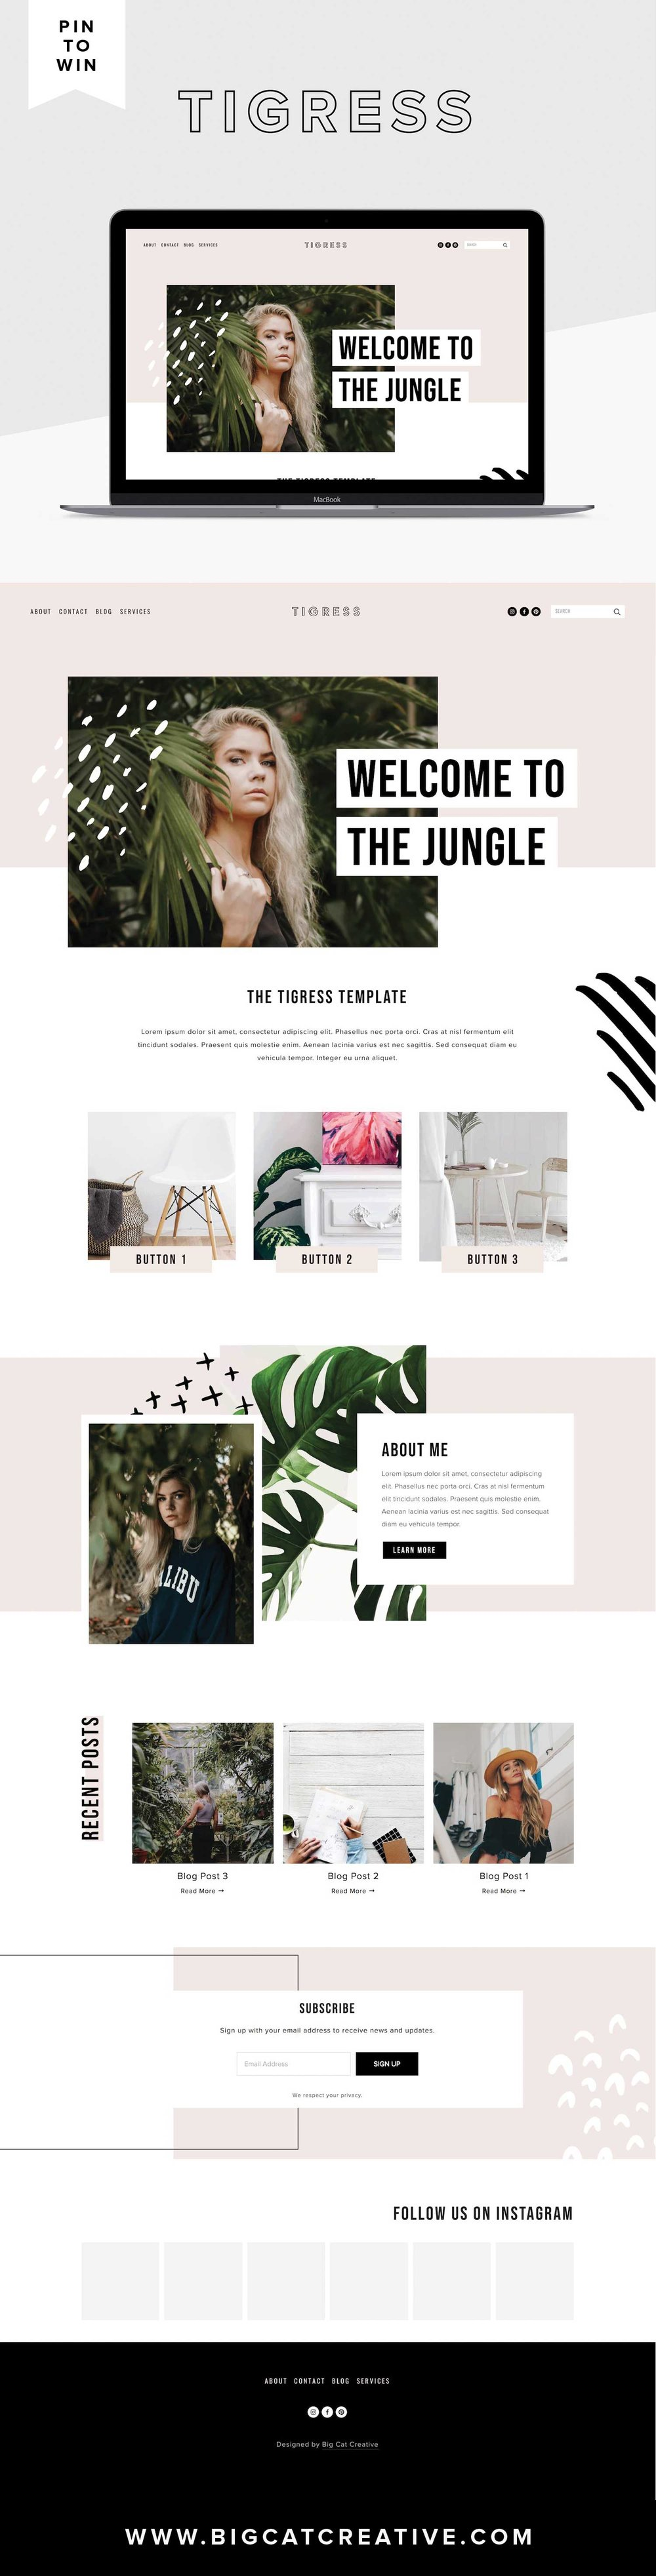 PIN IT TO WIN IT! TIGRESS SQUARESPACE TEMPLATE IS LIVE. Tigress is edgy, modern and feminine. This template is perfect for small businesses (photographers, designers, VAs, copywriters, educators etc), bloggers or influencers. This template is completely customizable, you can change colors, fonts, text, styles, almost anything! By Big Cat Creative | Squarespace Templates | Website Templates | Squarespace Design |  Squarepace Themes | Squarespace Inspiration | Squarespace Website Design Inspiration | Squarespace Blog Design | Website Design Layout | Web Design